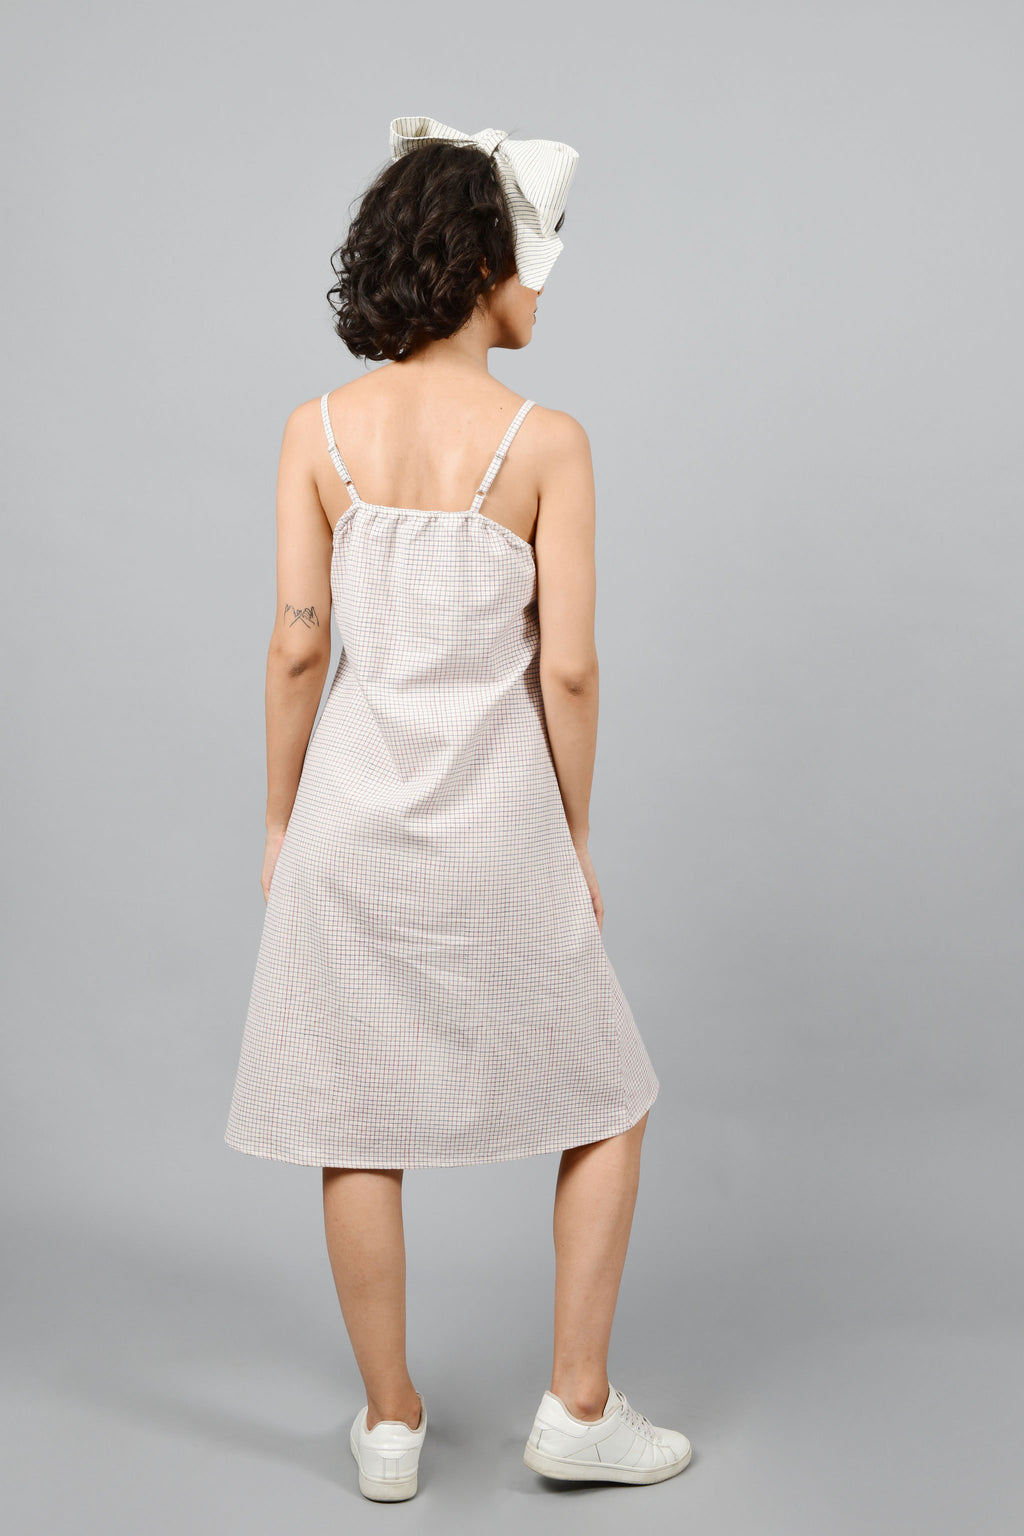 Model showing the back of the dress made by hand block printed handspun handwoven cotton khadi dress, printed with checks of red and blue on an off-white base. The model is also wearing an off-white printed bow in the same technique